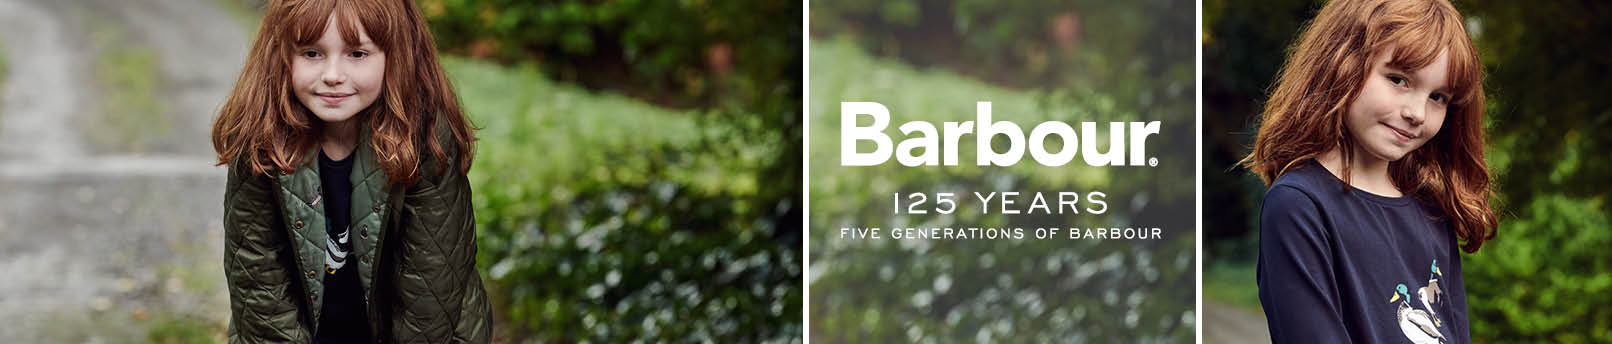 Discover Barbour